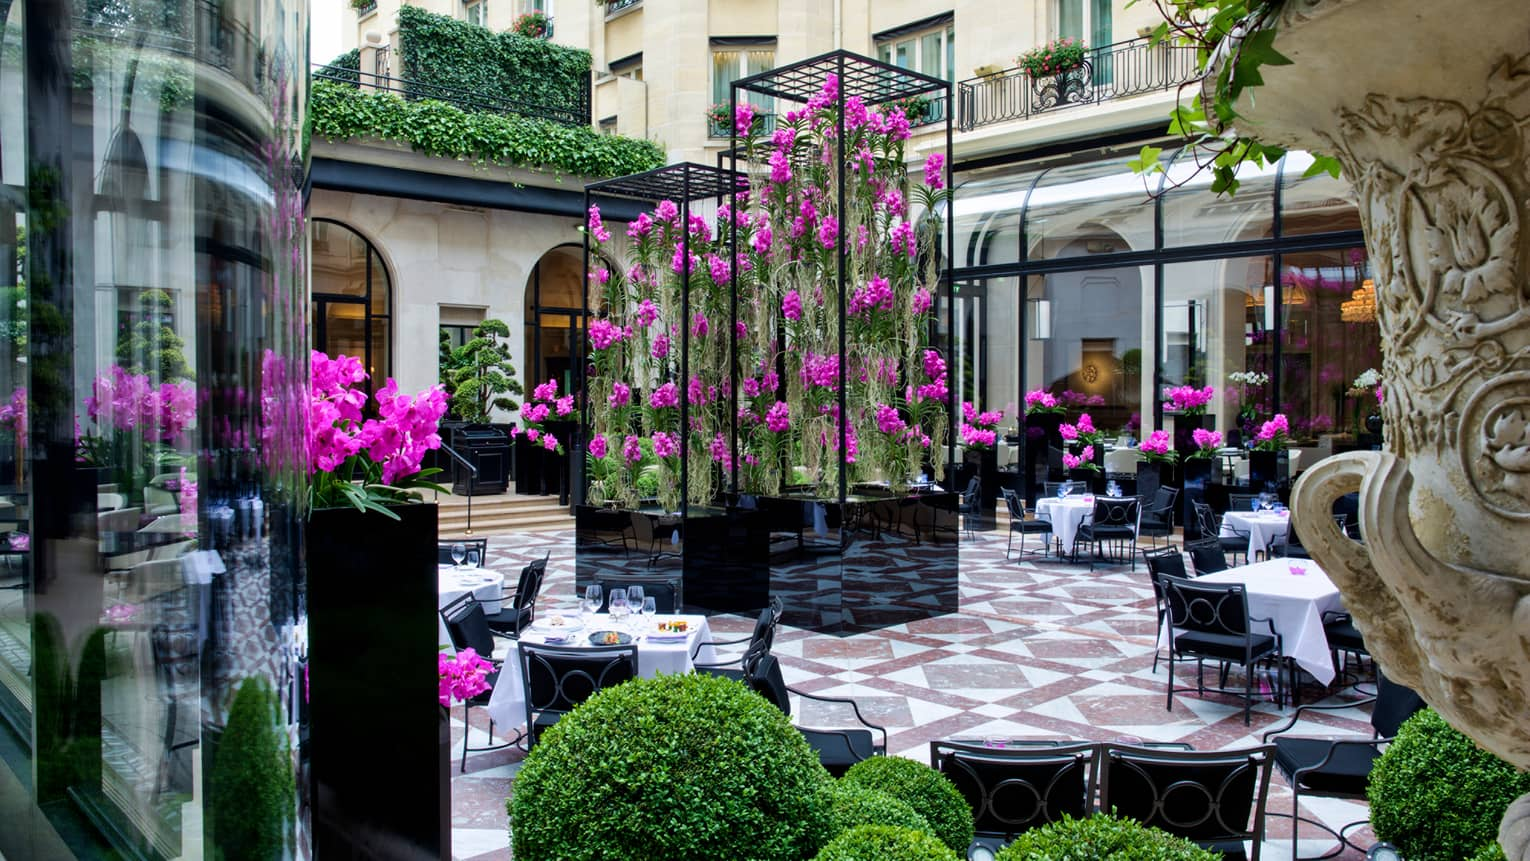 L'Orangerie courtyard dining patio, tall black planters with trailing purple flowers